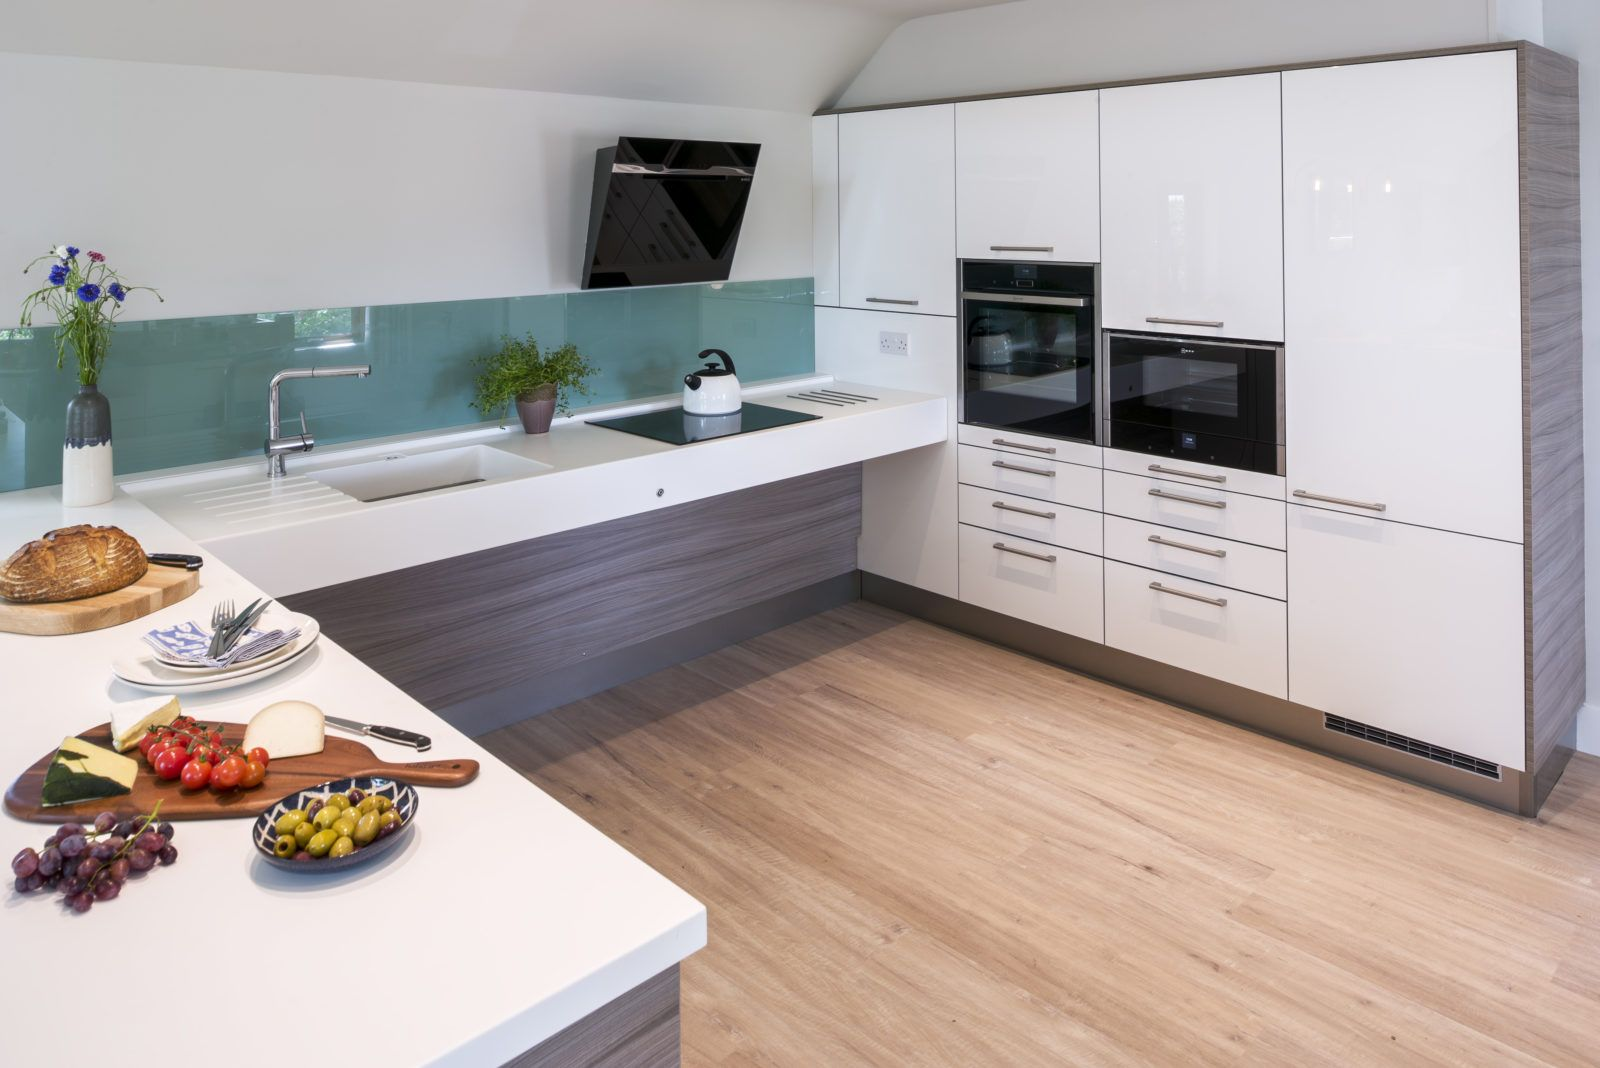 Accessible Kitchen Motionspot Accessible Kitchen Spacious Kitchens Home